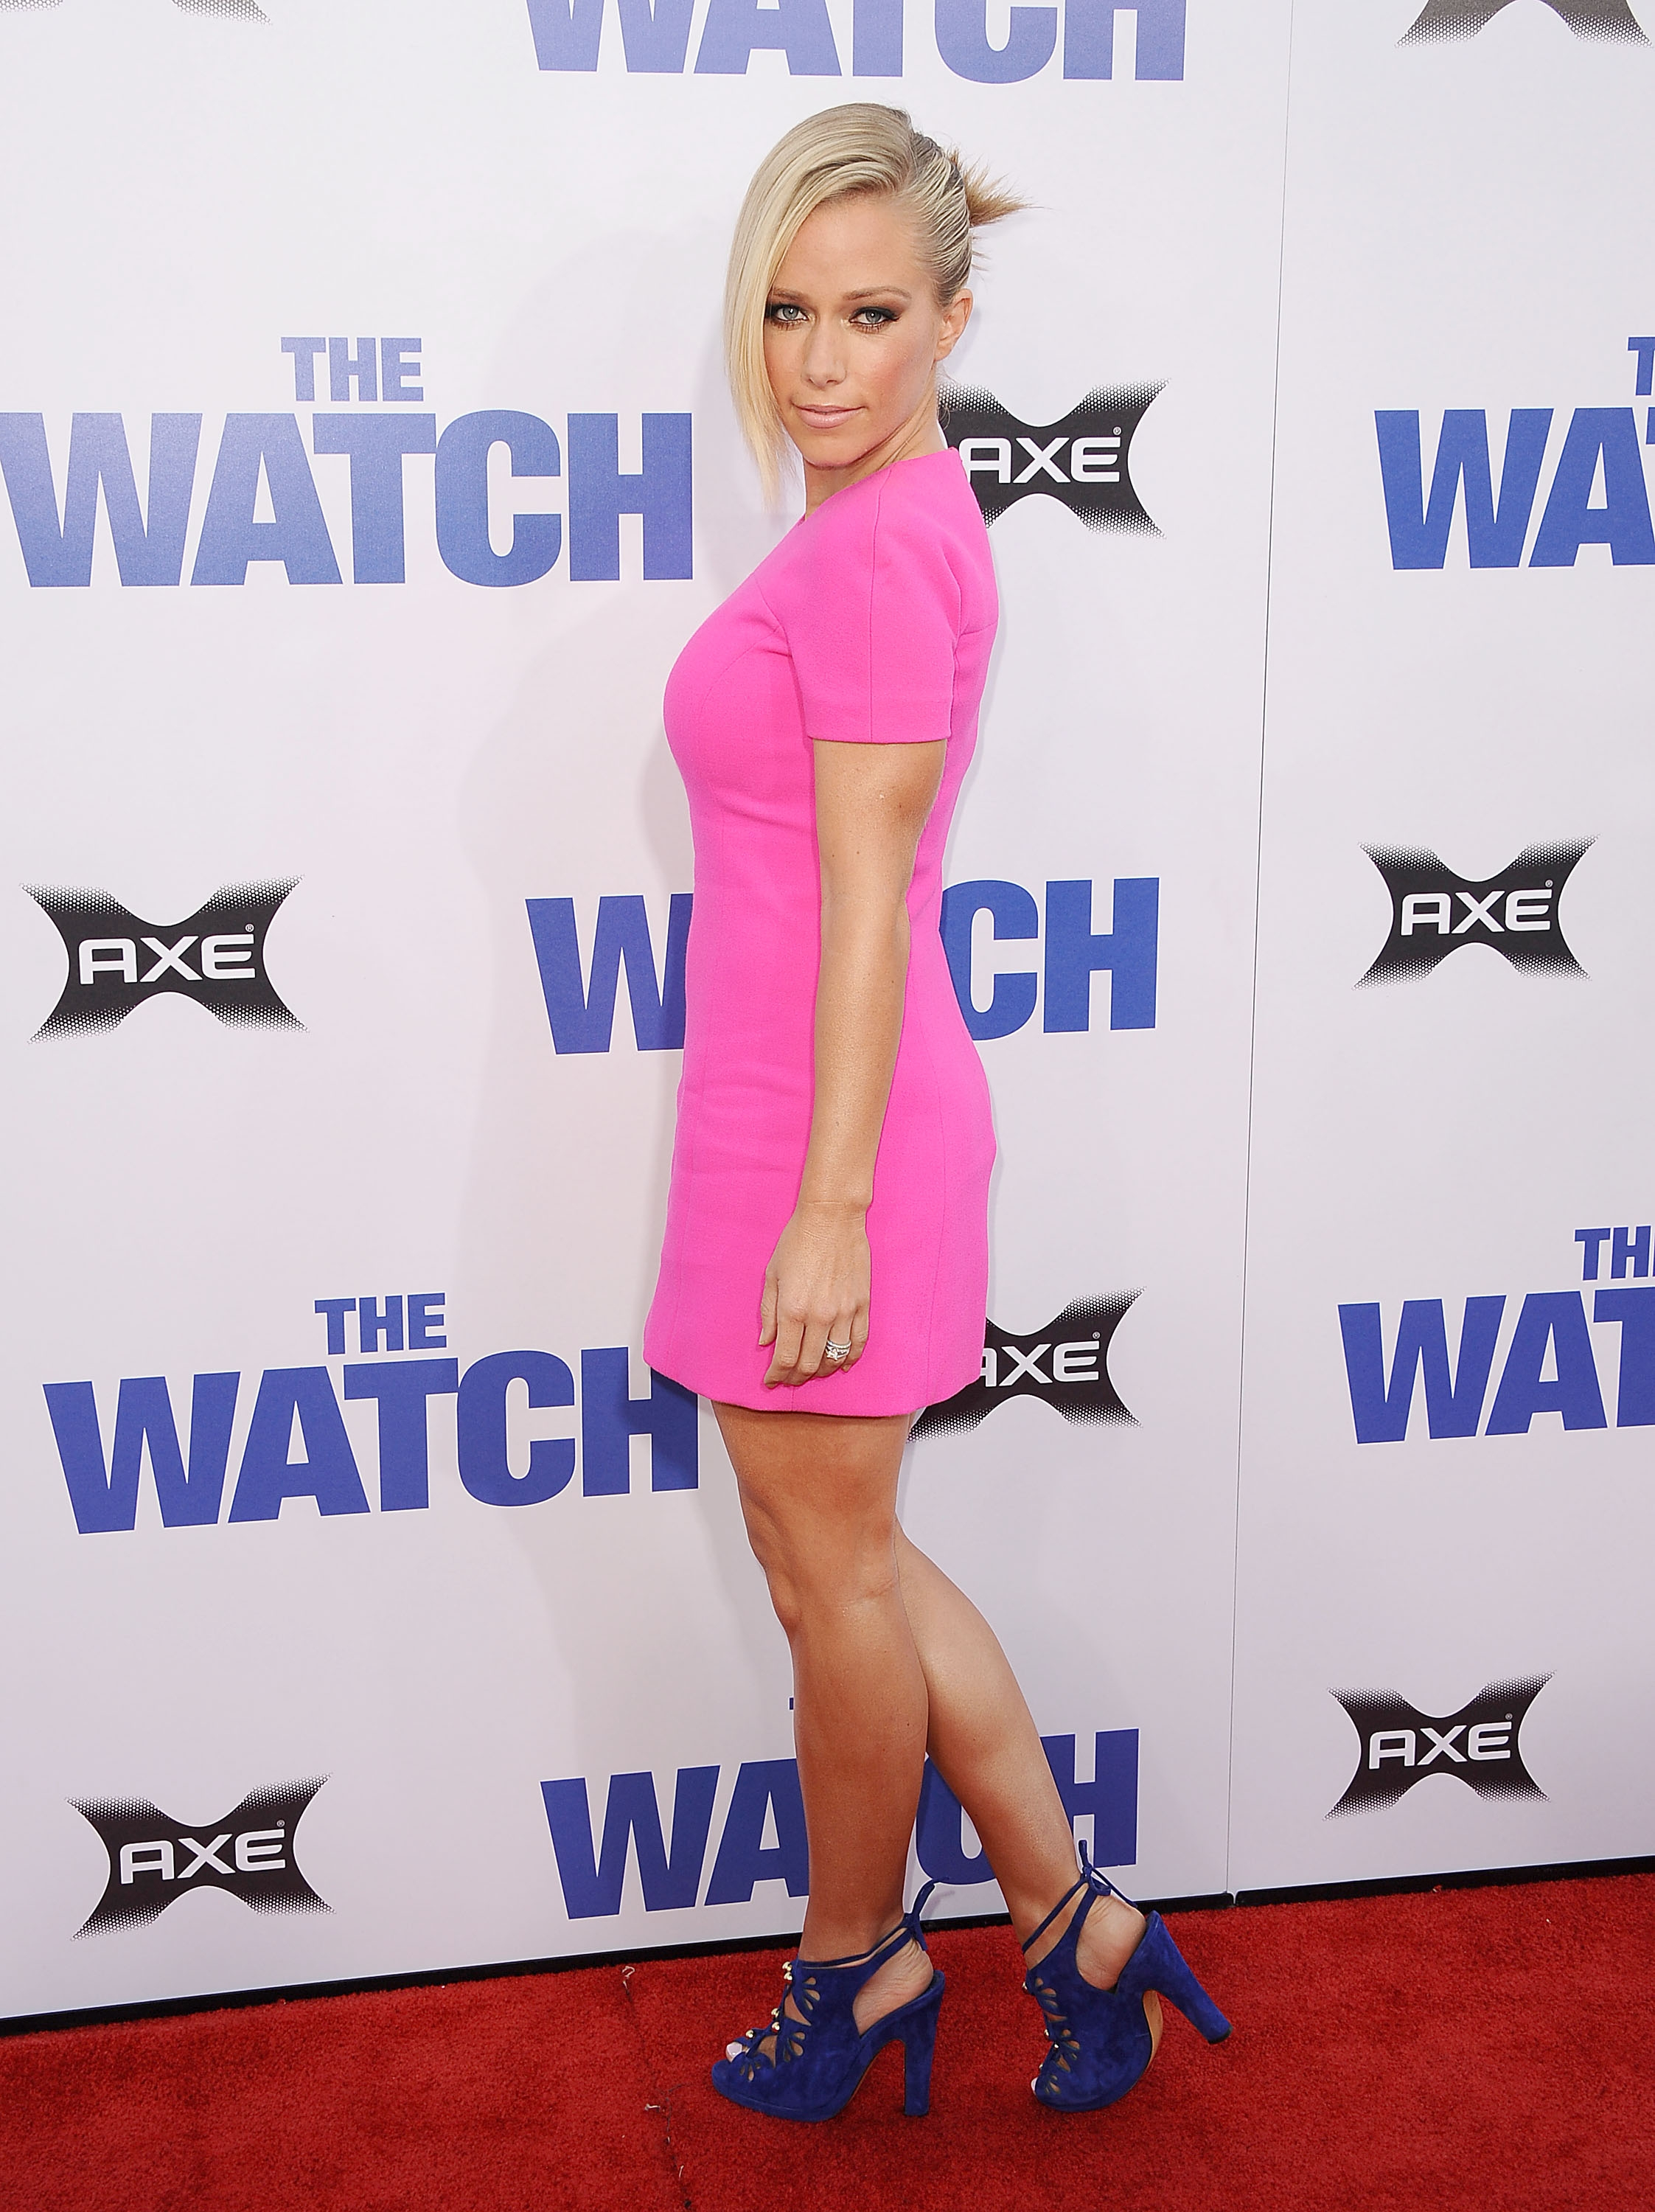 Kendra Wilkinson Seen Looking Hot In Pink At The Premiere Of The Watch At